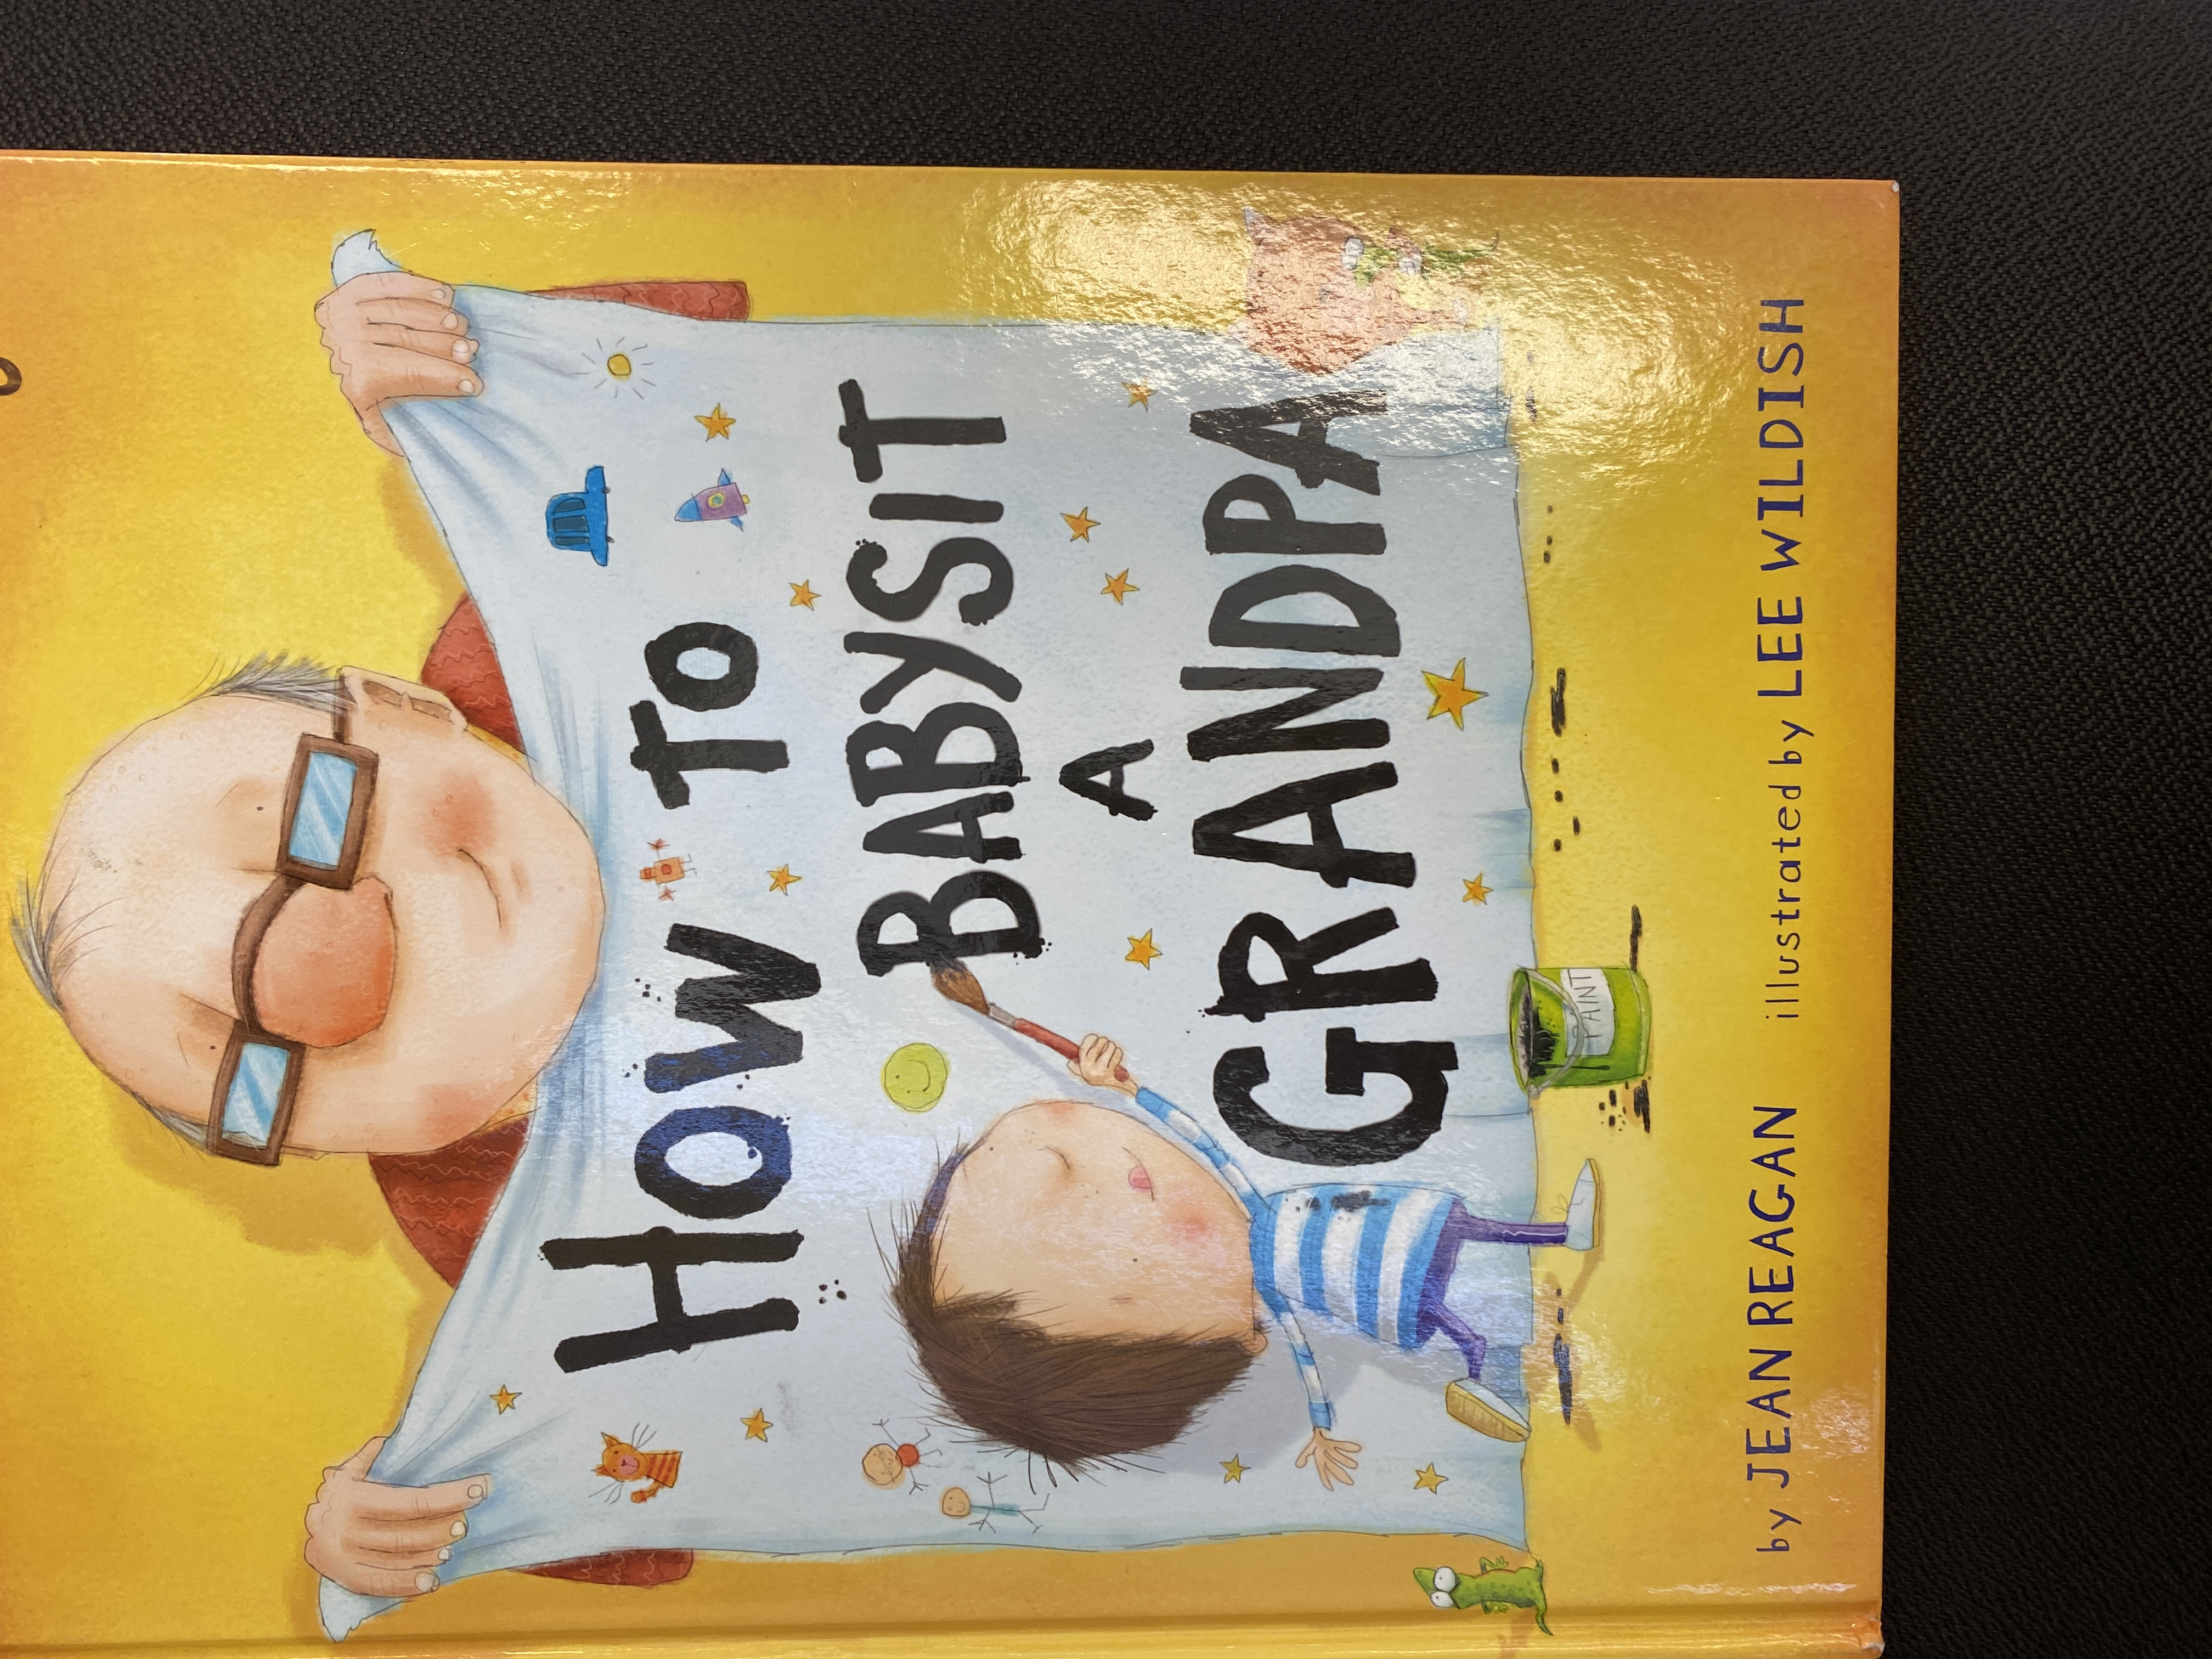 Ask your child about this fun book!